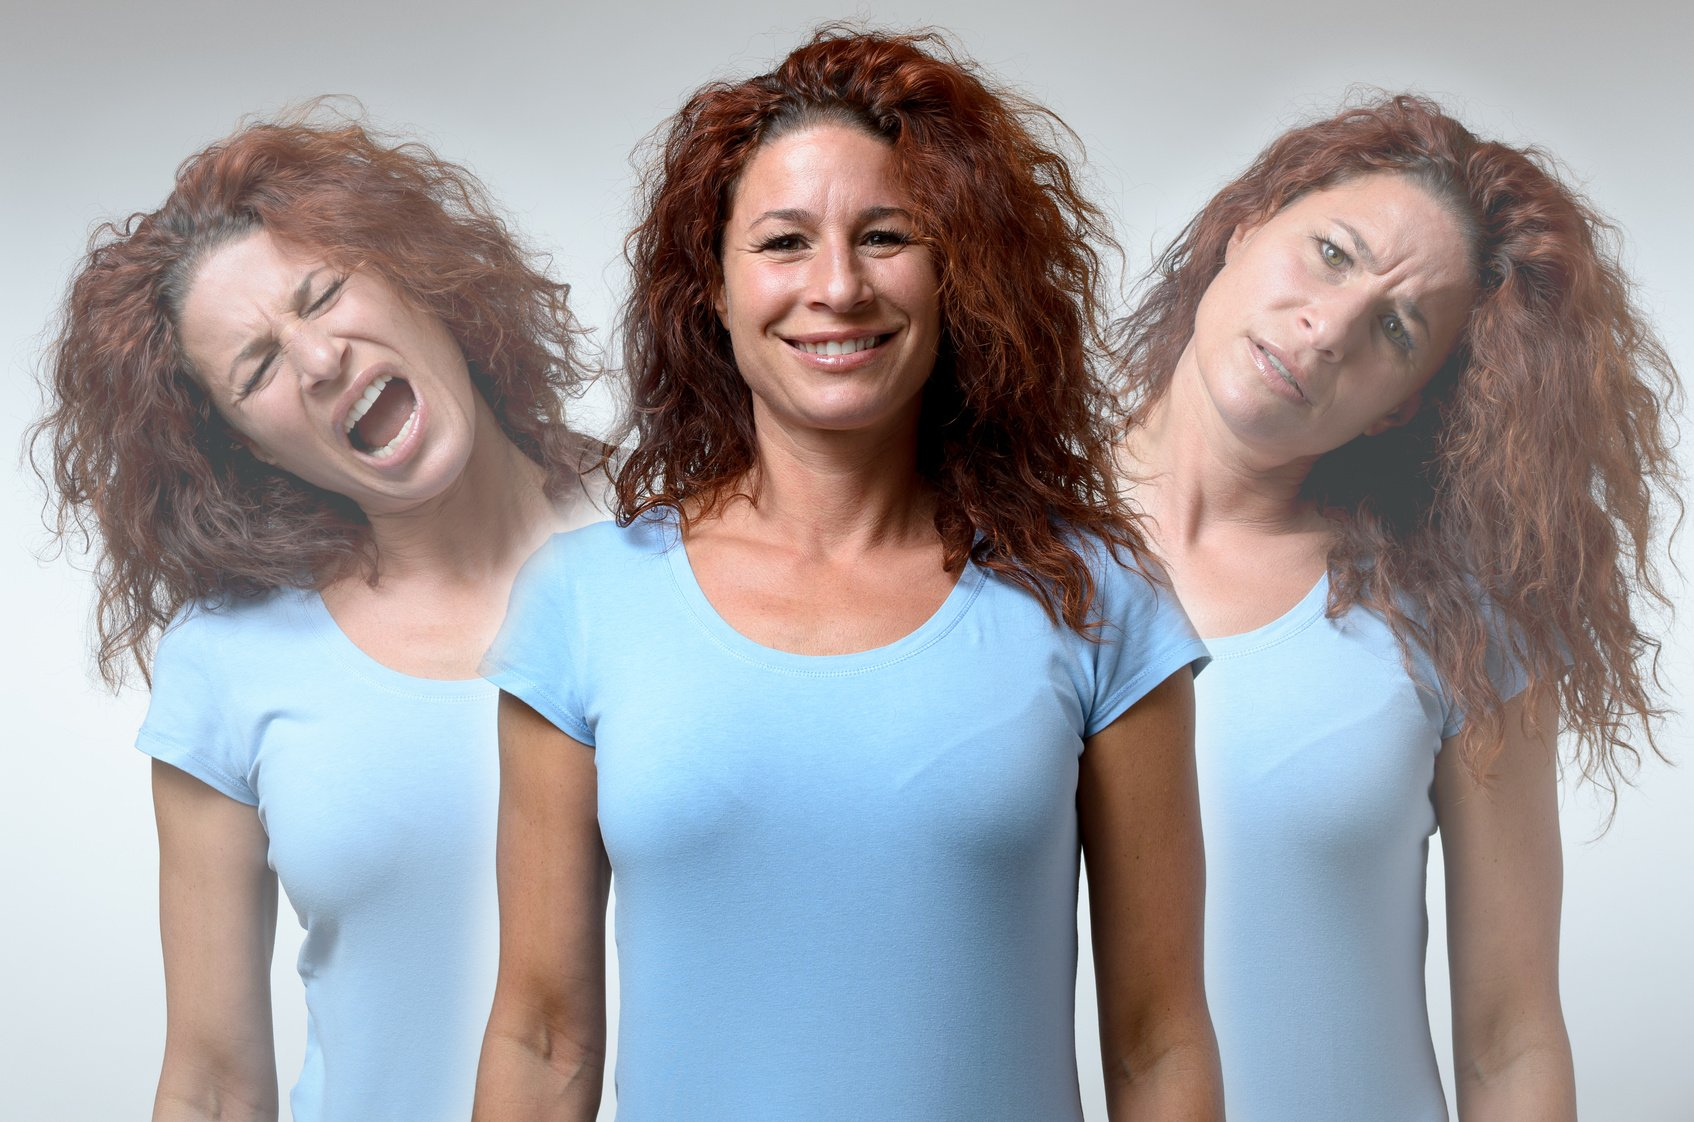 psychology Front view on three versions of woman changing from moods of anger, joy and confusion